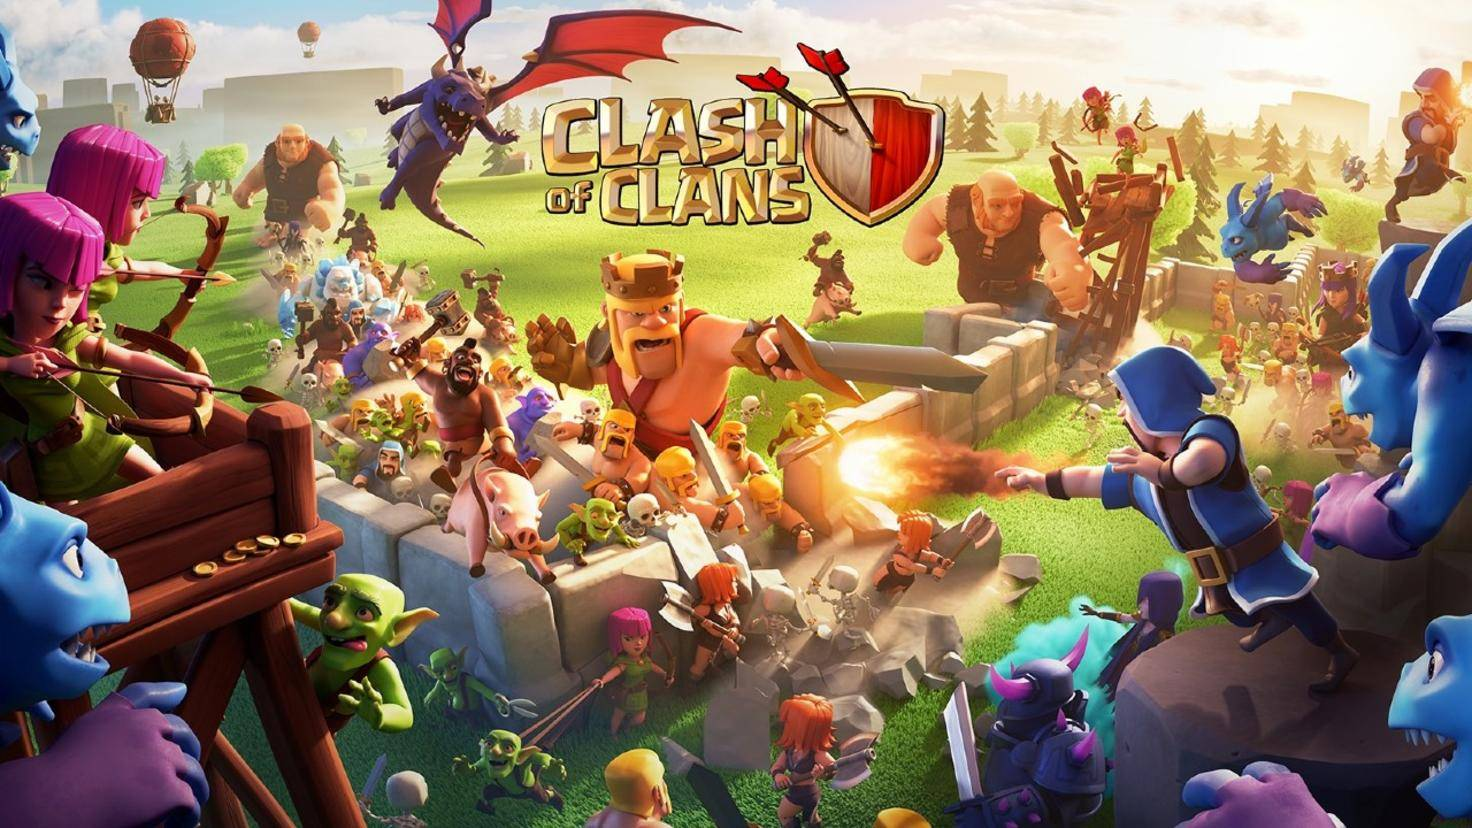 clash-of-clans-artwork-2